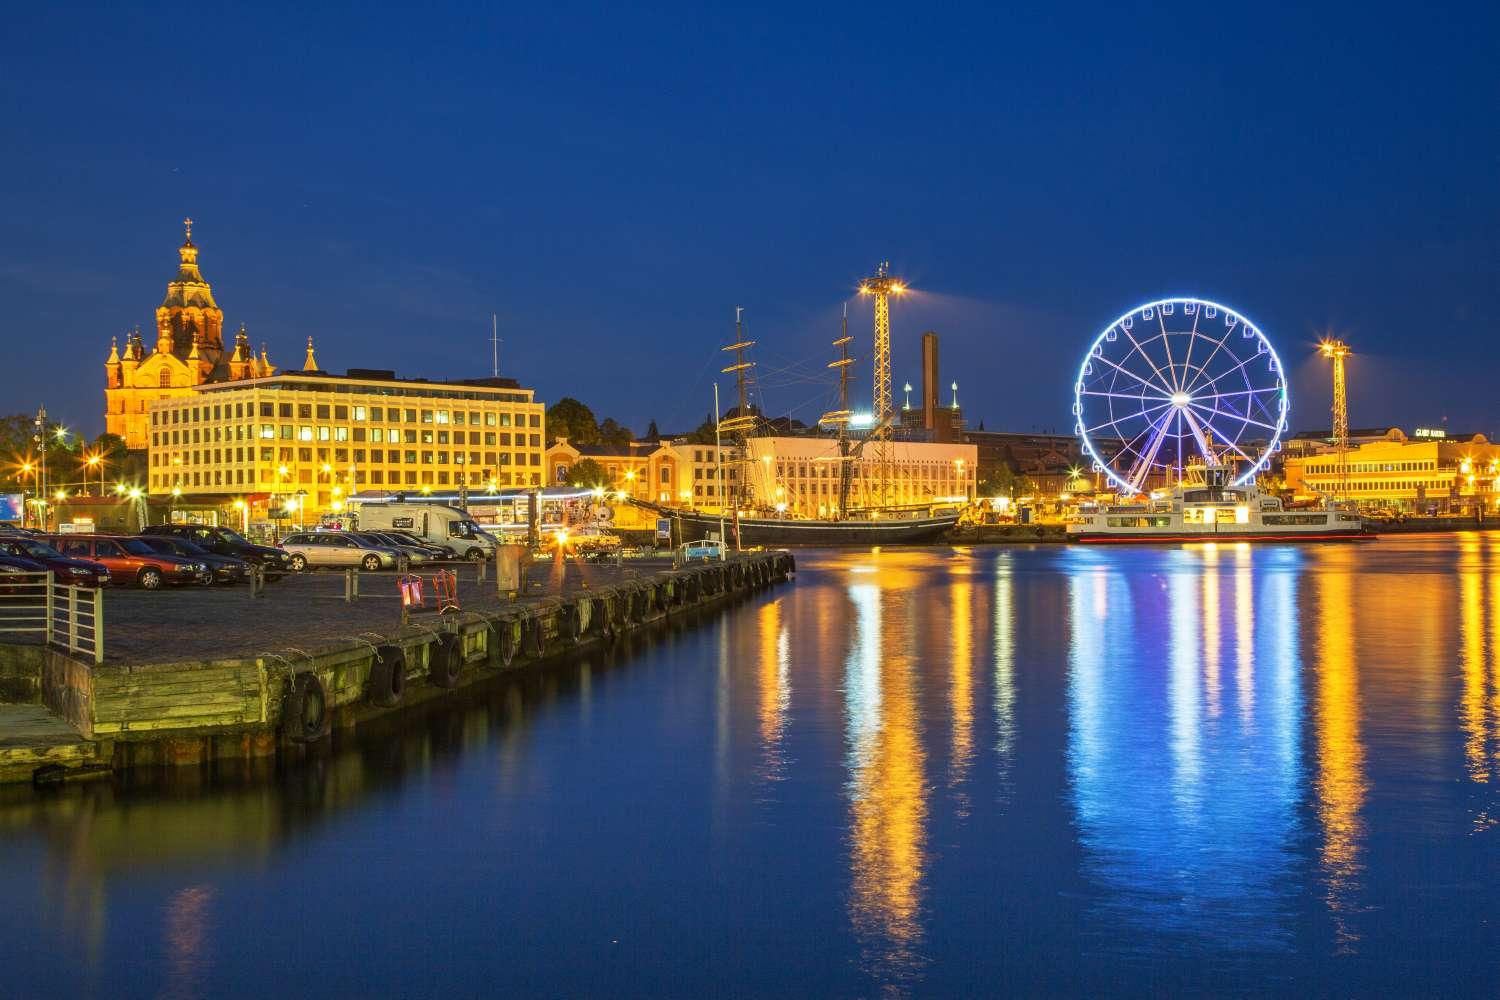 Helsinki harbor at night